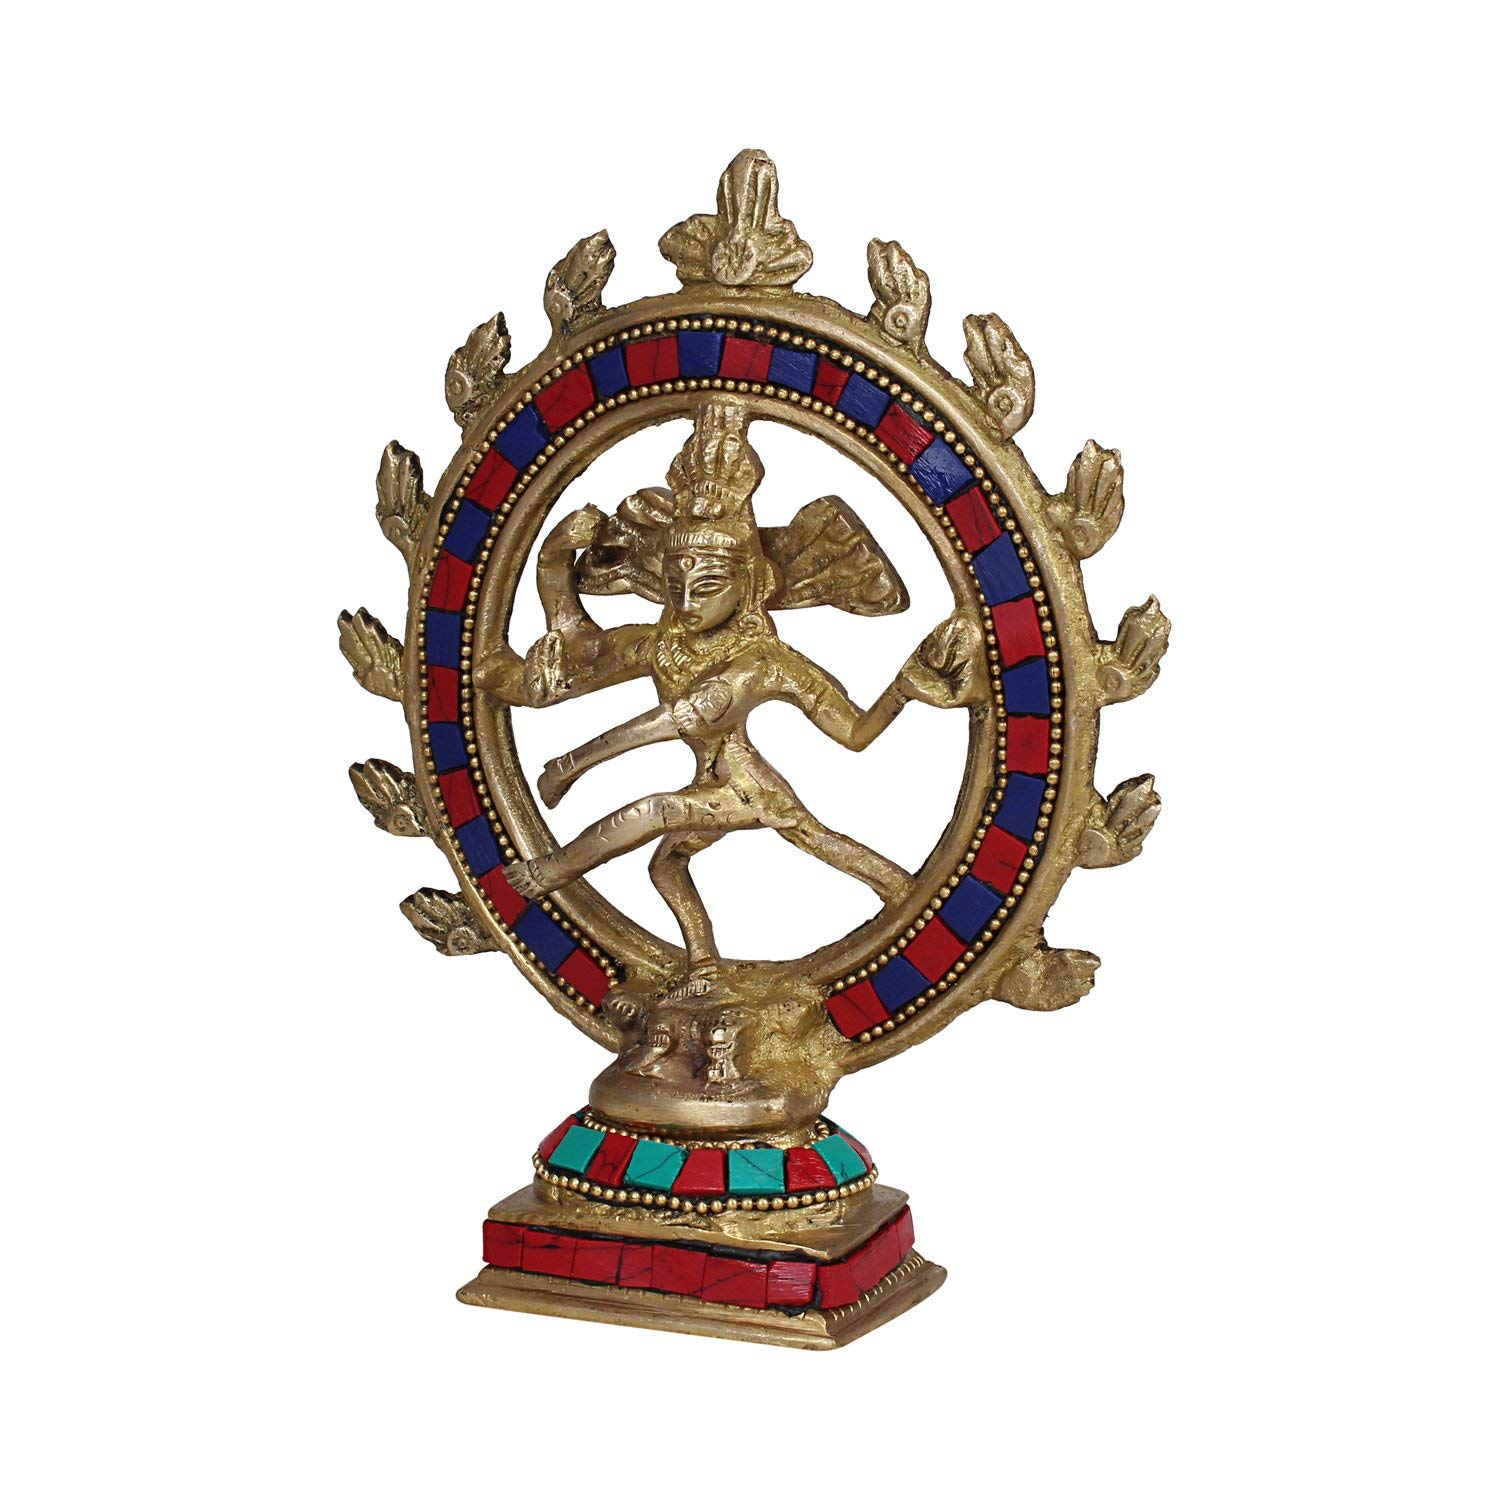 PINK-LOTUS Brass Statue Idol of Lord Dancing God Shiva Natraj ...